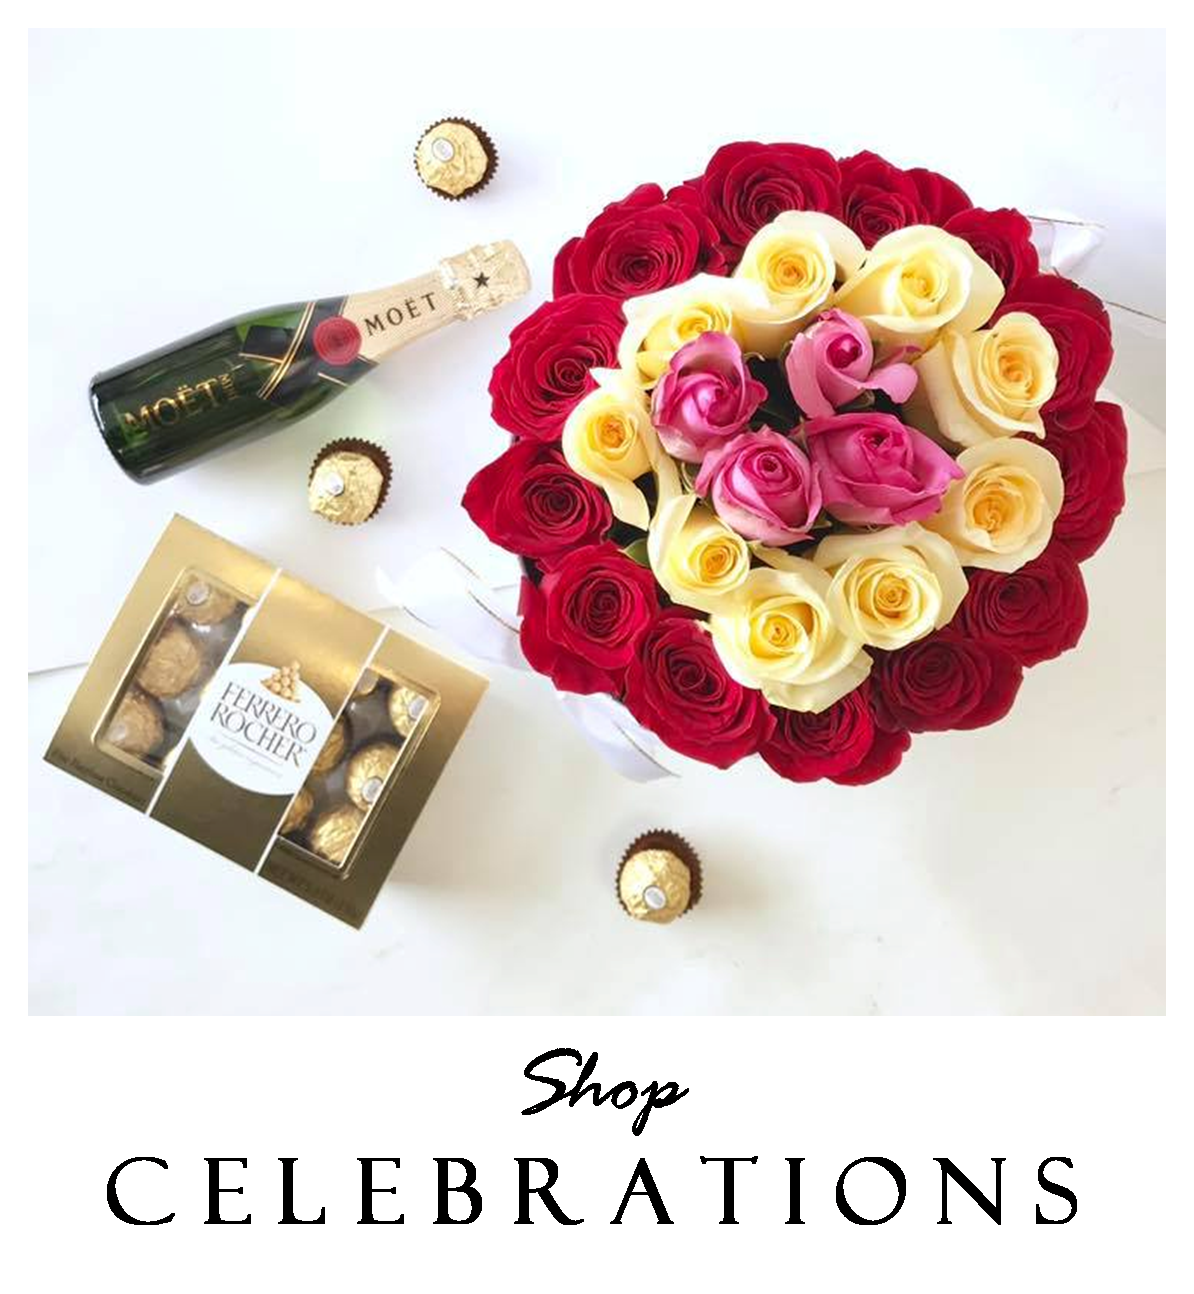 we-make-el-paso-bloom-with-celebrations-rose-boxes-angies-floral-designs-angies-floral-birthday-anniversary-designs-rose-ladders-el-paso-florist-79912-west-angies-flower.png